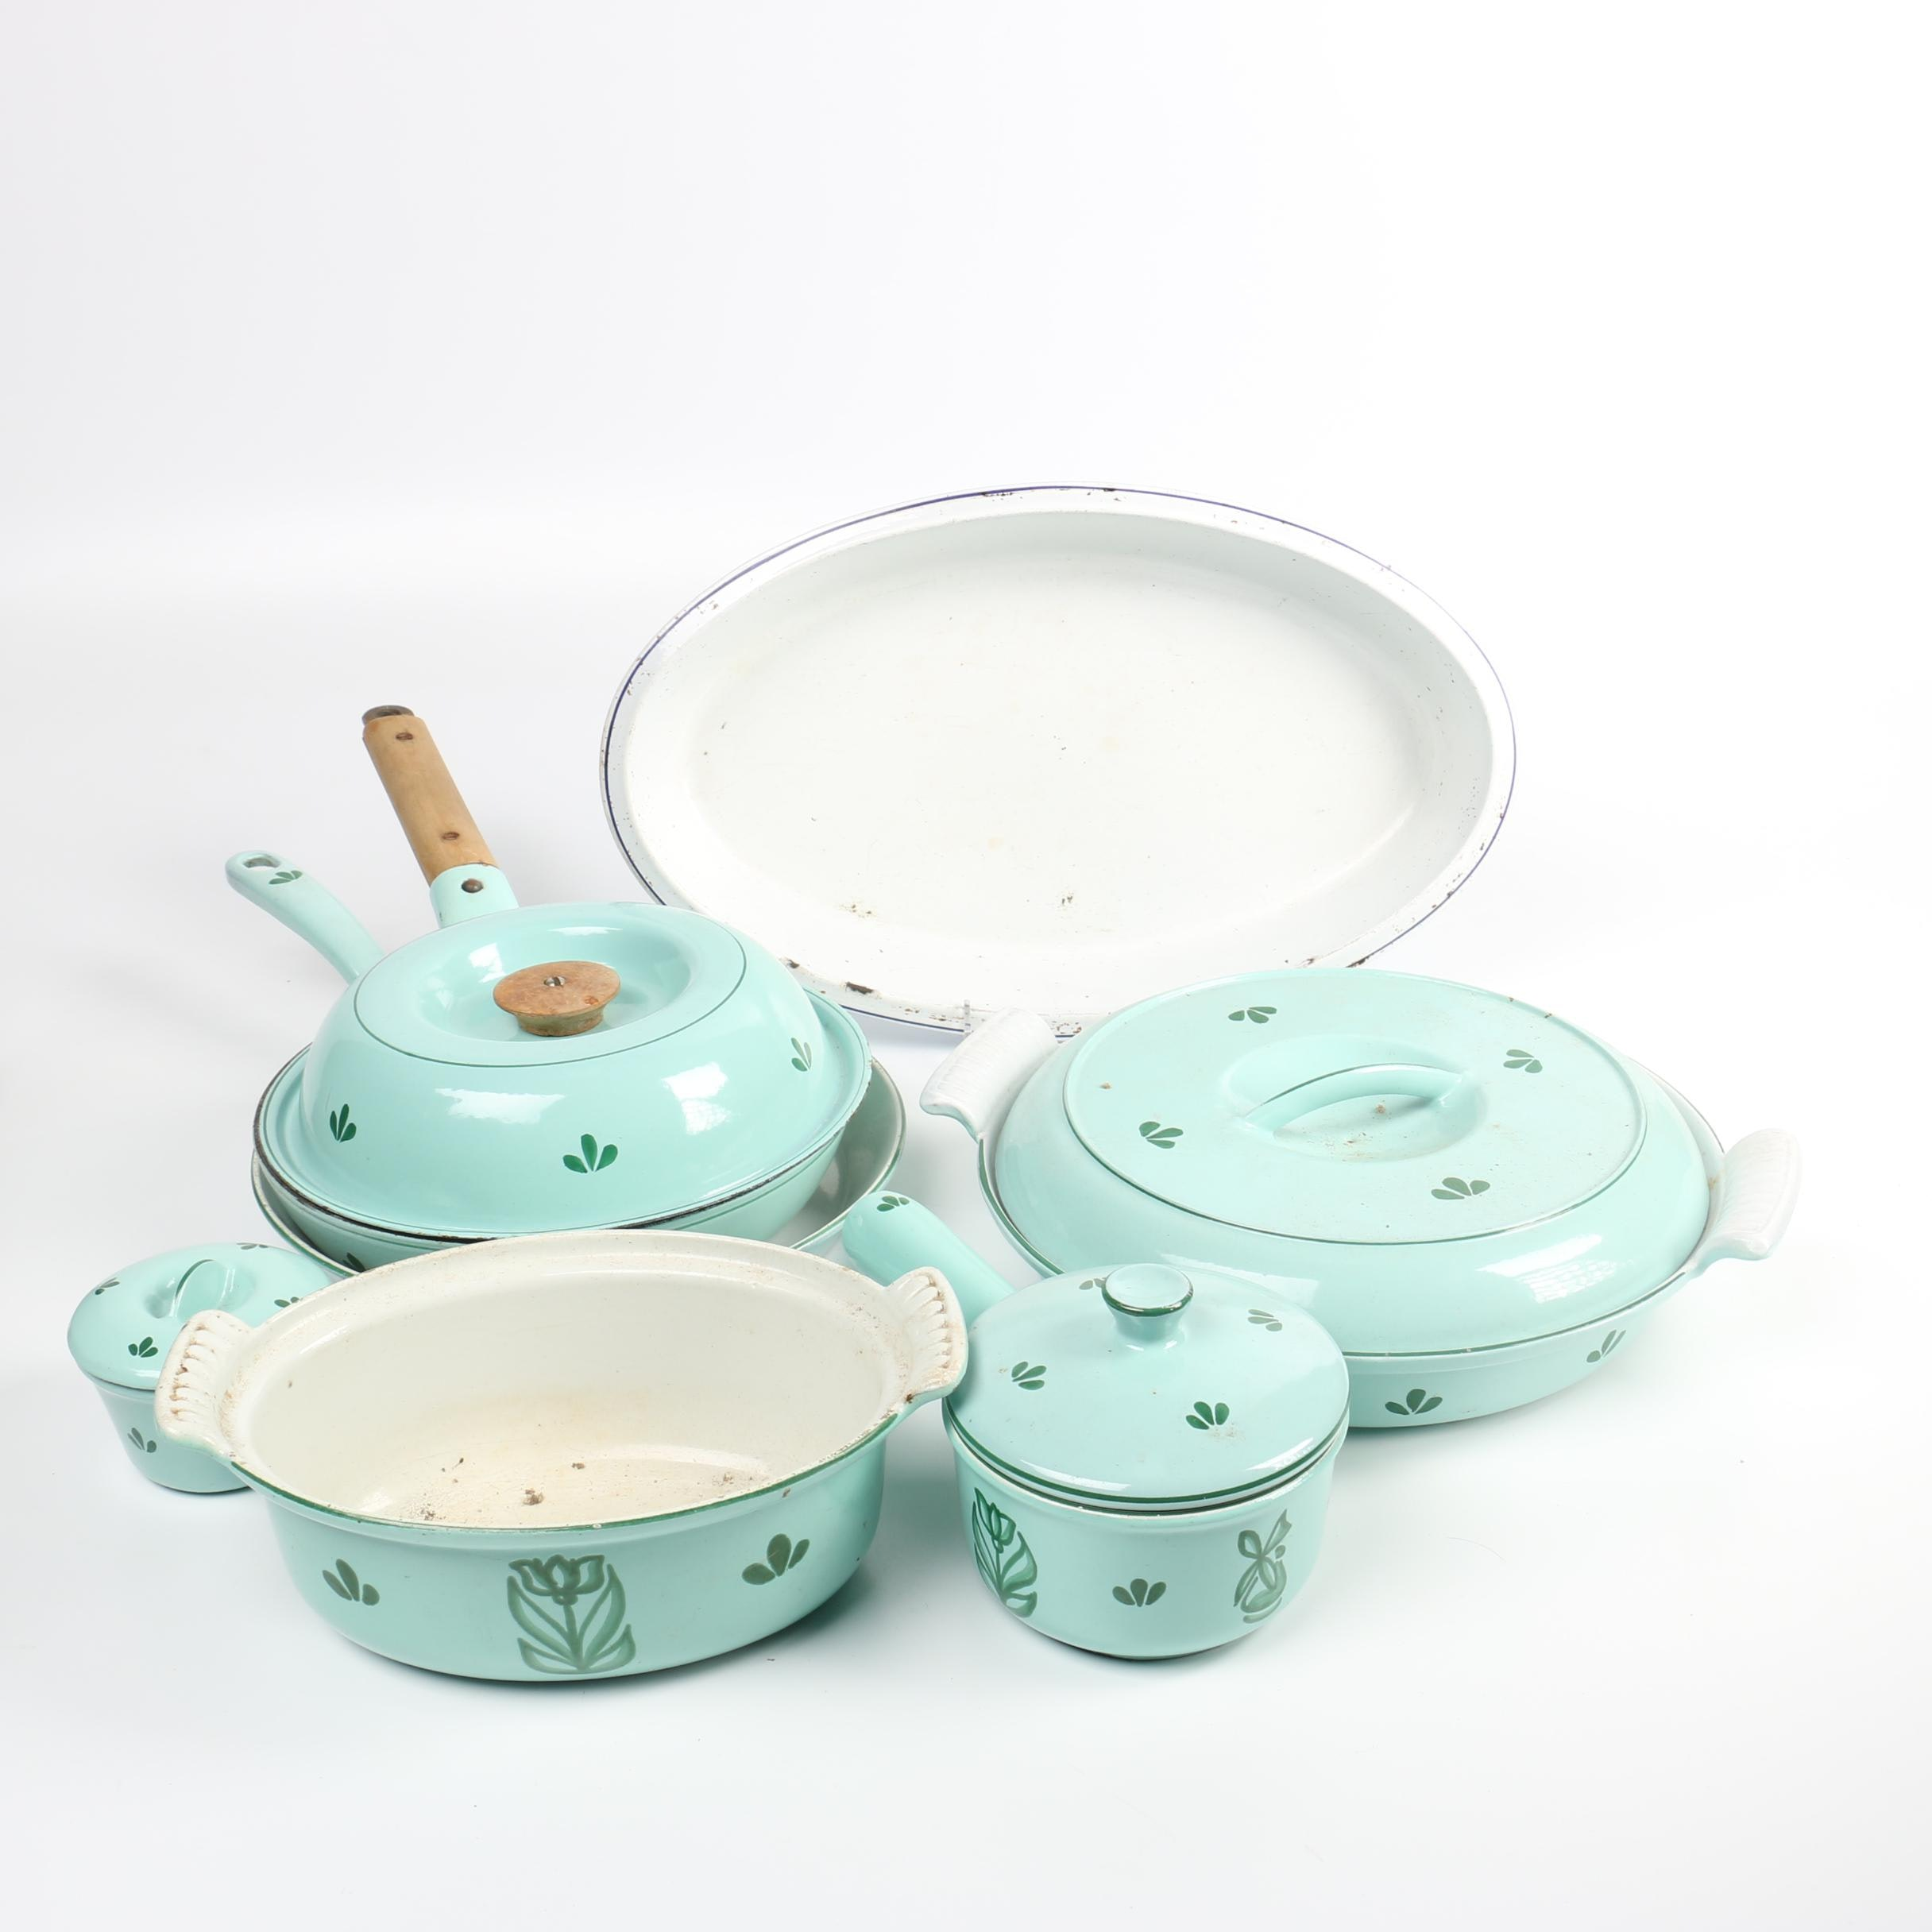 dru holland green enameled cast iron cookware and bakeware